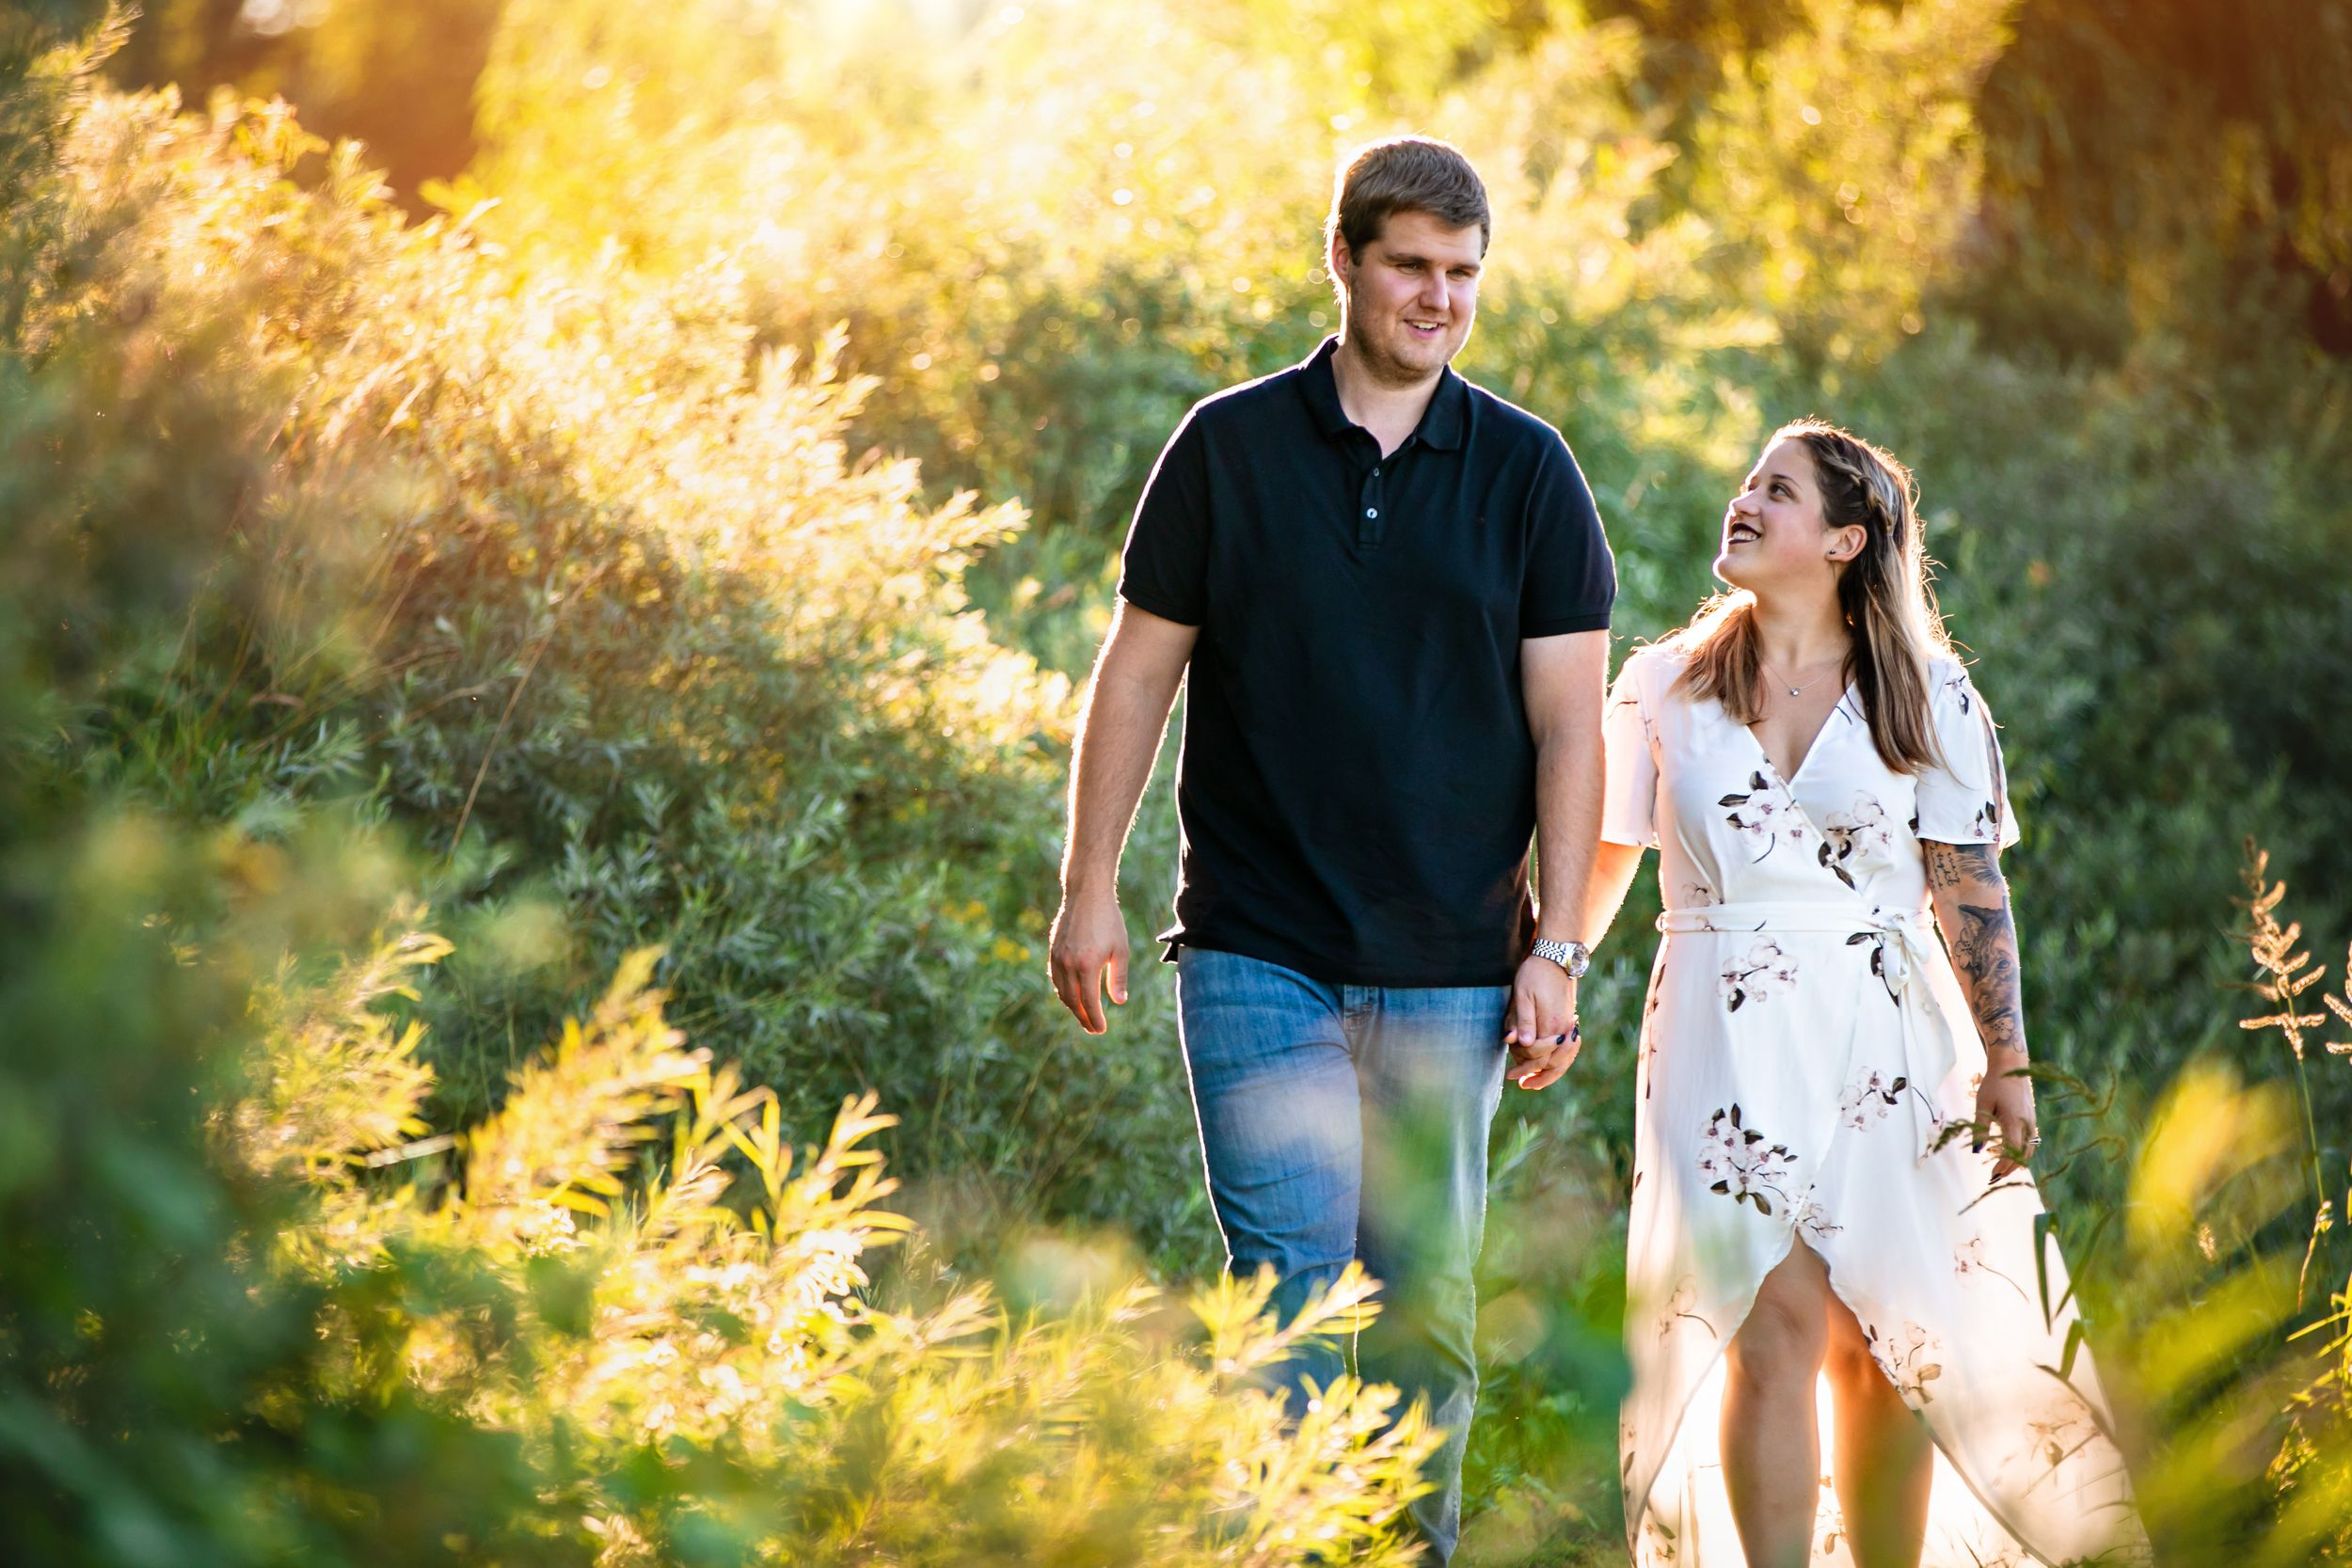 Cute and quirky engagement photos at Fanshawe Conservation Area London Ontario by wedding photographer Shawn Van Daele